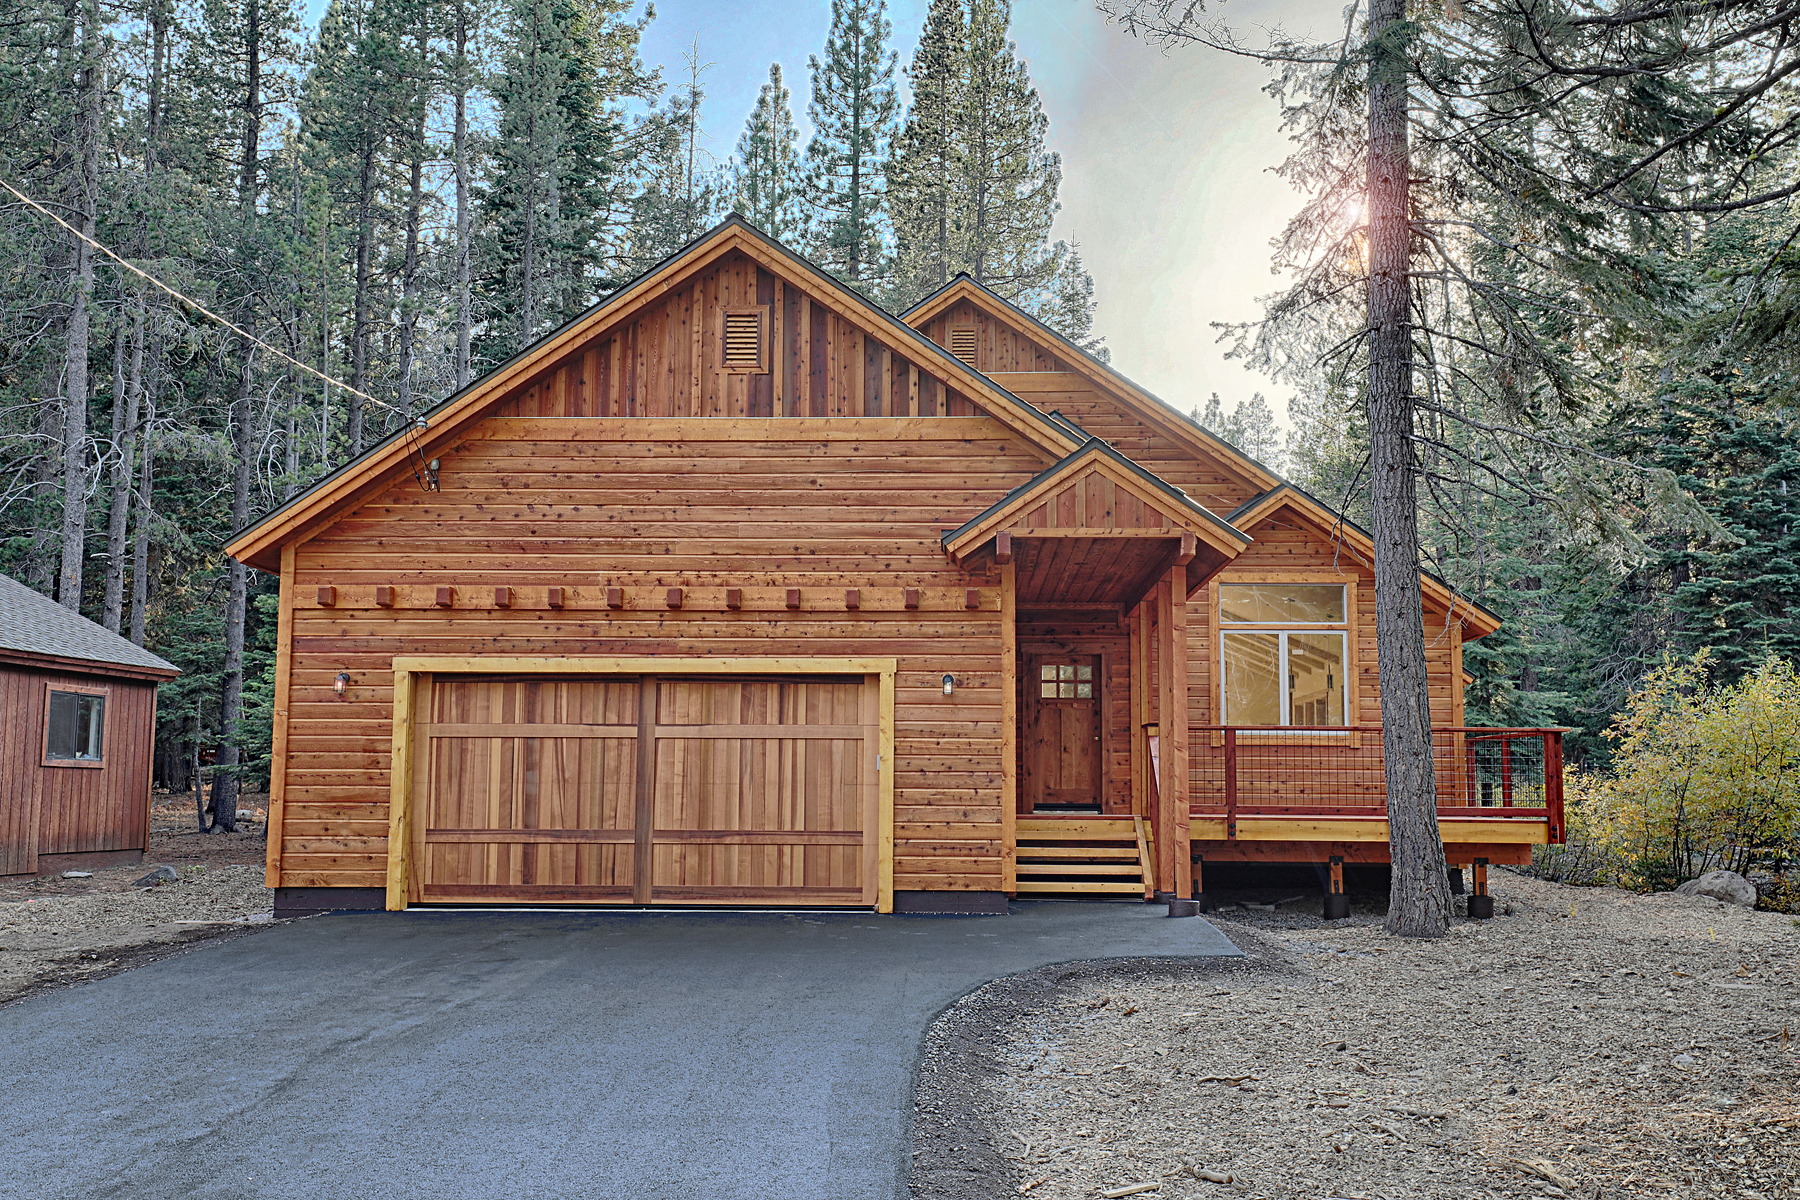 Single Family Home for Active at 14141 Tyrol Road, Truckee, CA 14141 Tyrol Road Truckee, California 96161 United States